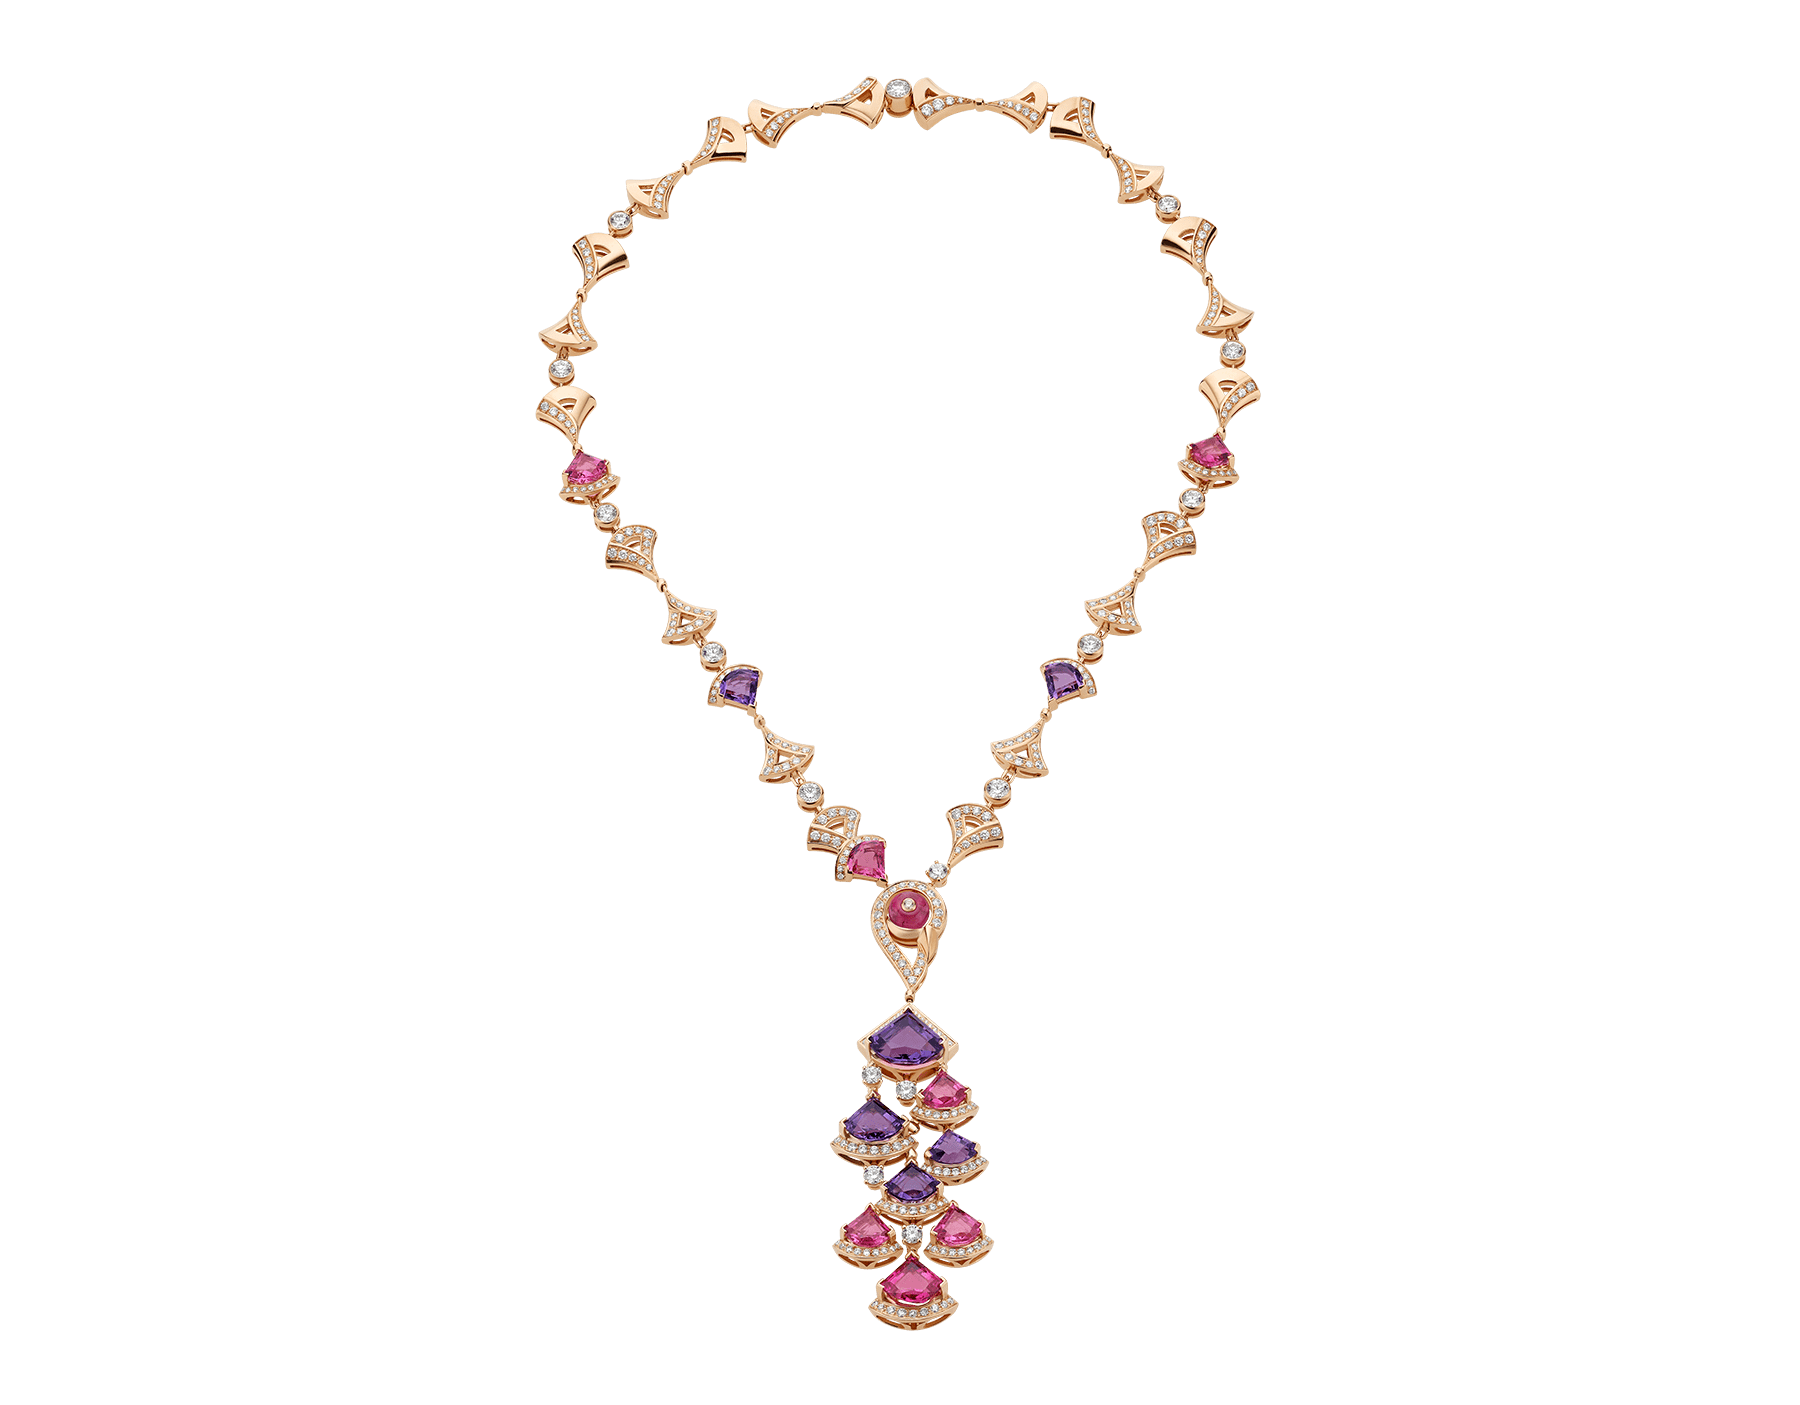 DIVAS' DREAM necklace in 18 kt rose gold set with pink rubellite, amethysts, pink tourmaline (1.50 ct) and pavé diamonds. 354075 image 1